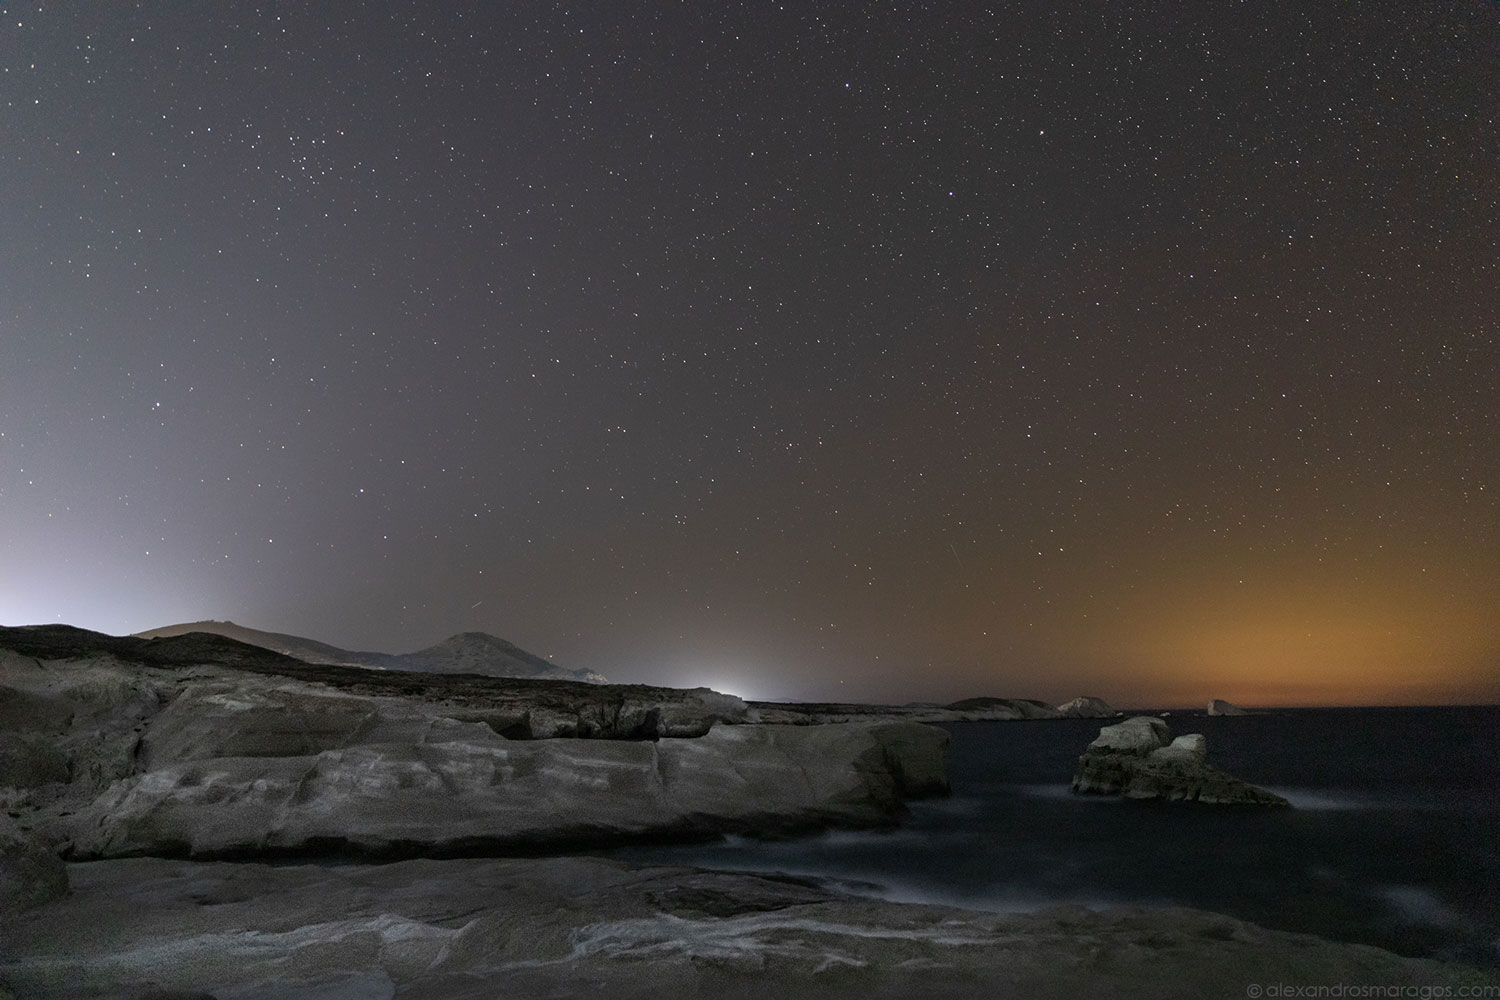 Night at Sarakiniko, Milos, Greece | © Alexandros Maragos